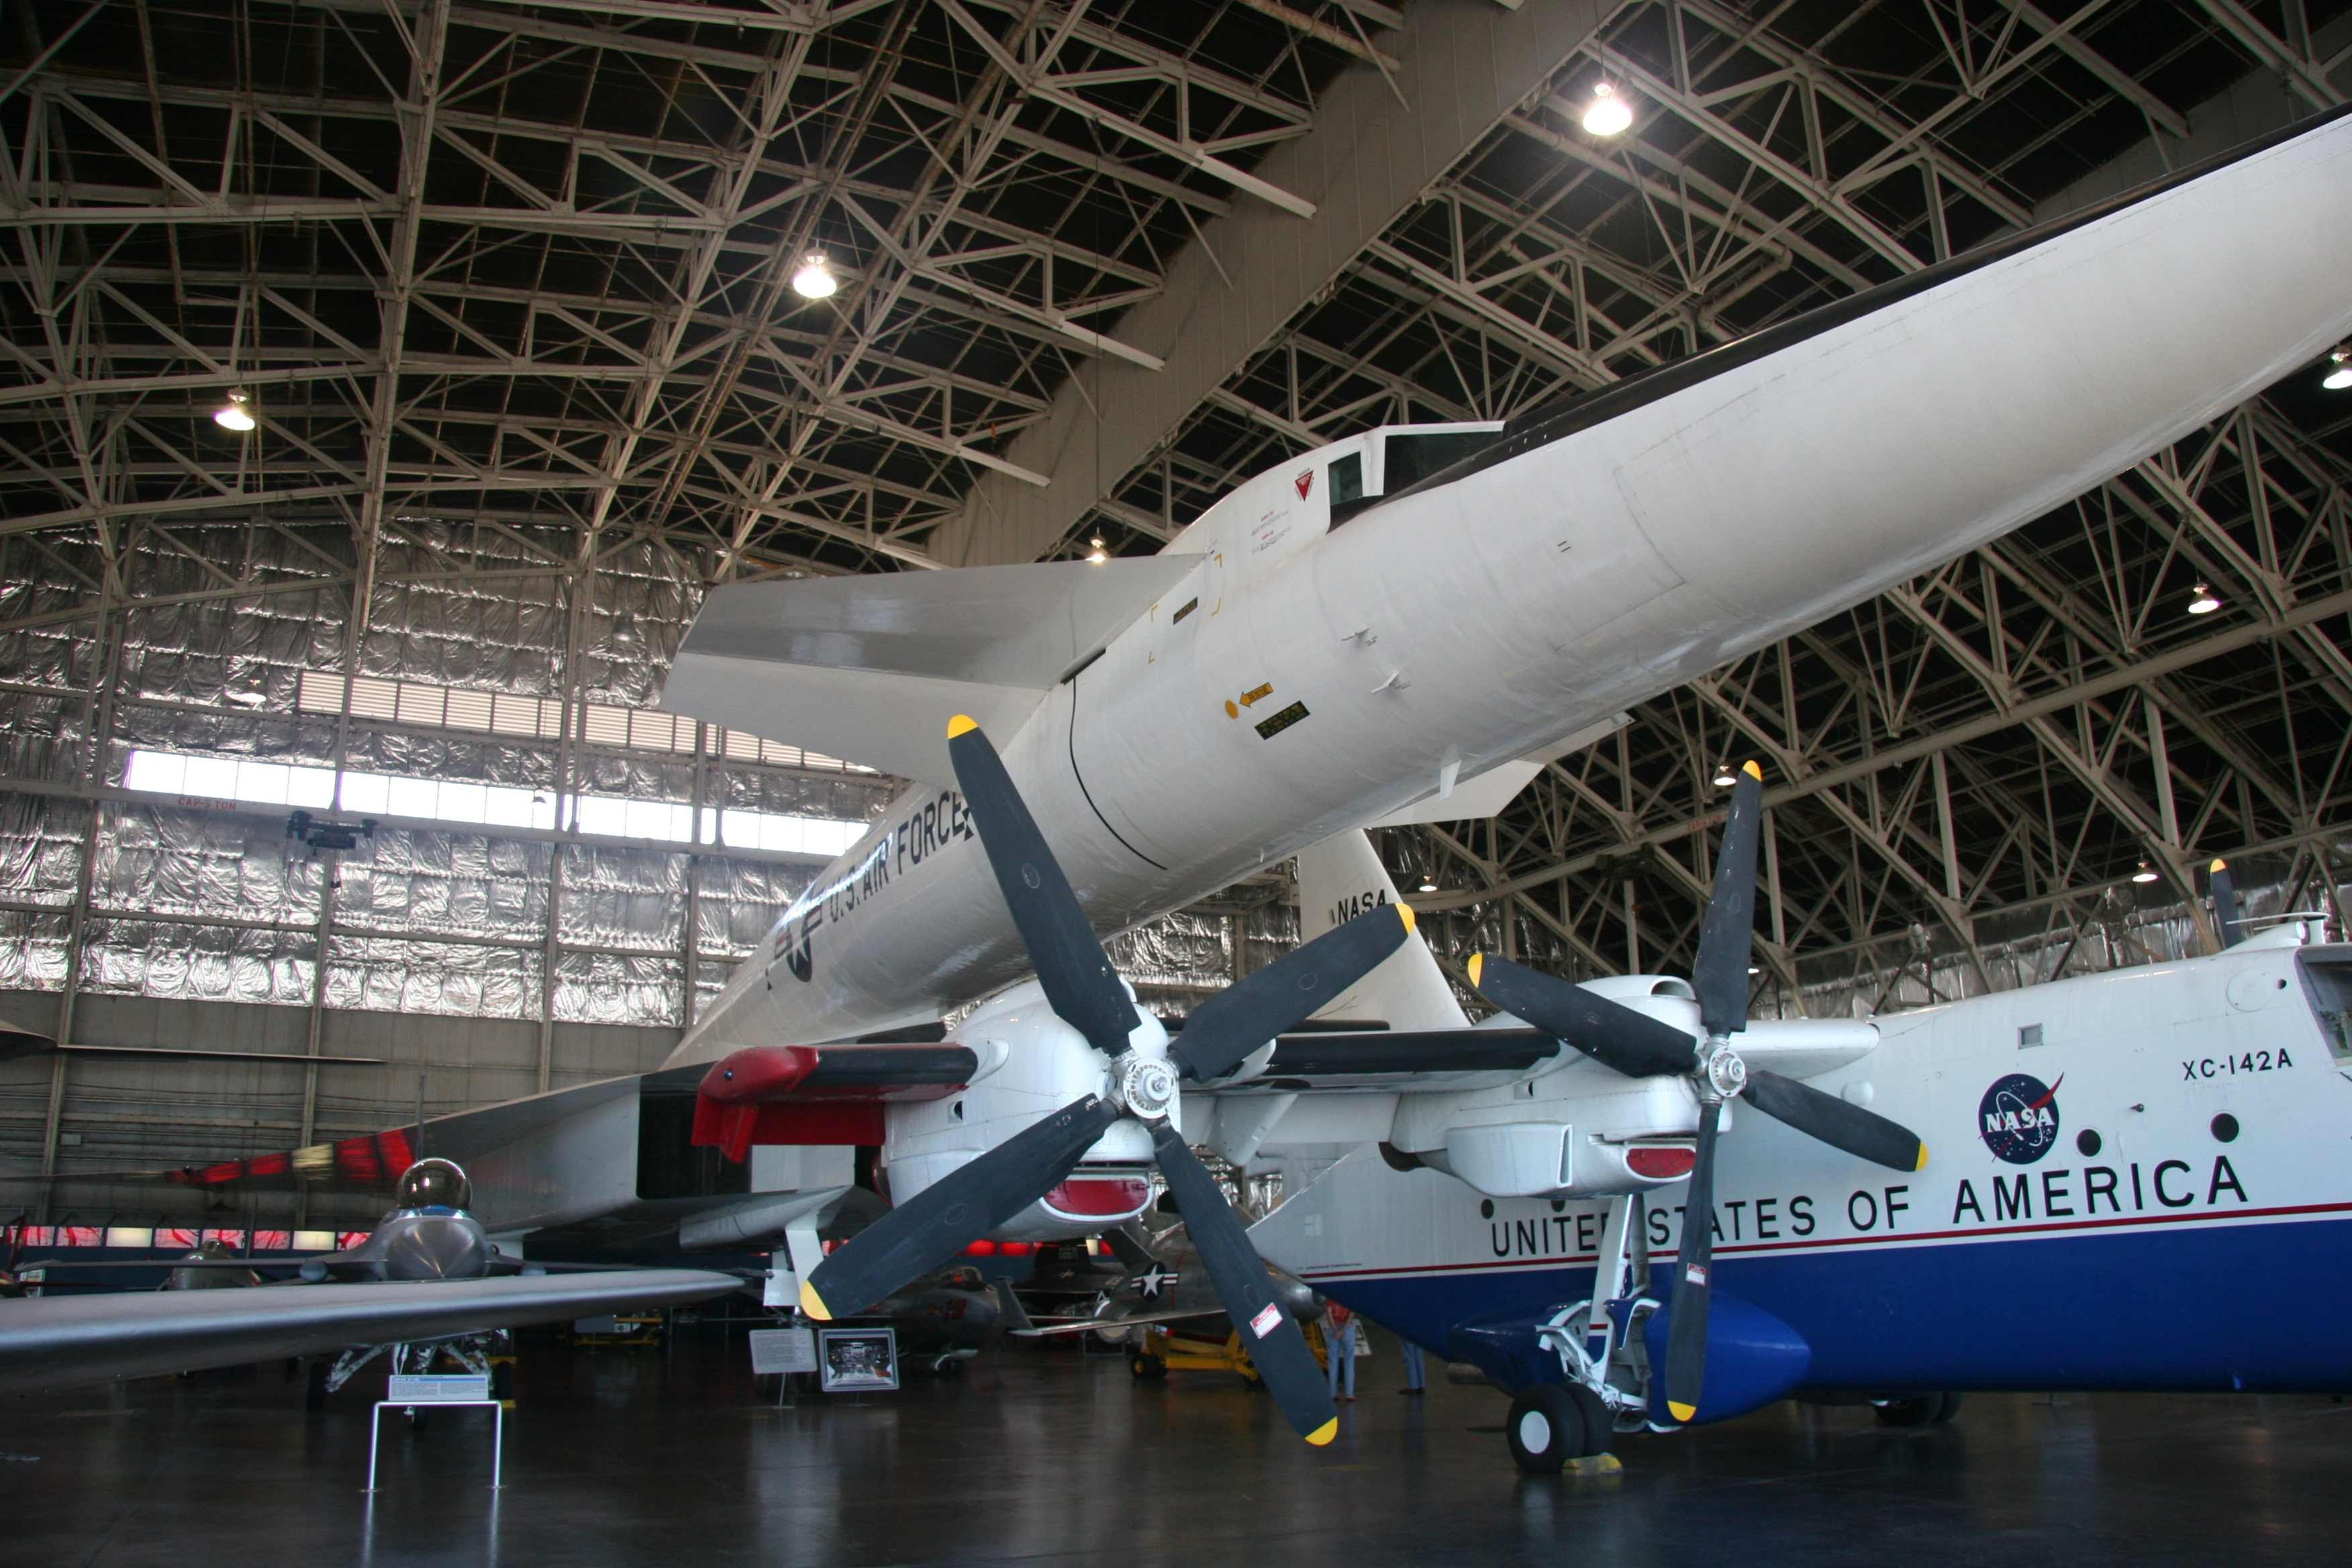 Usairforcemuseum Stcoyle - Air force museums in us